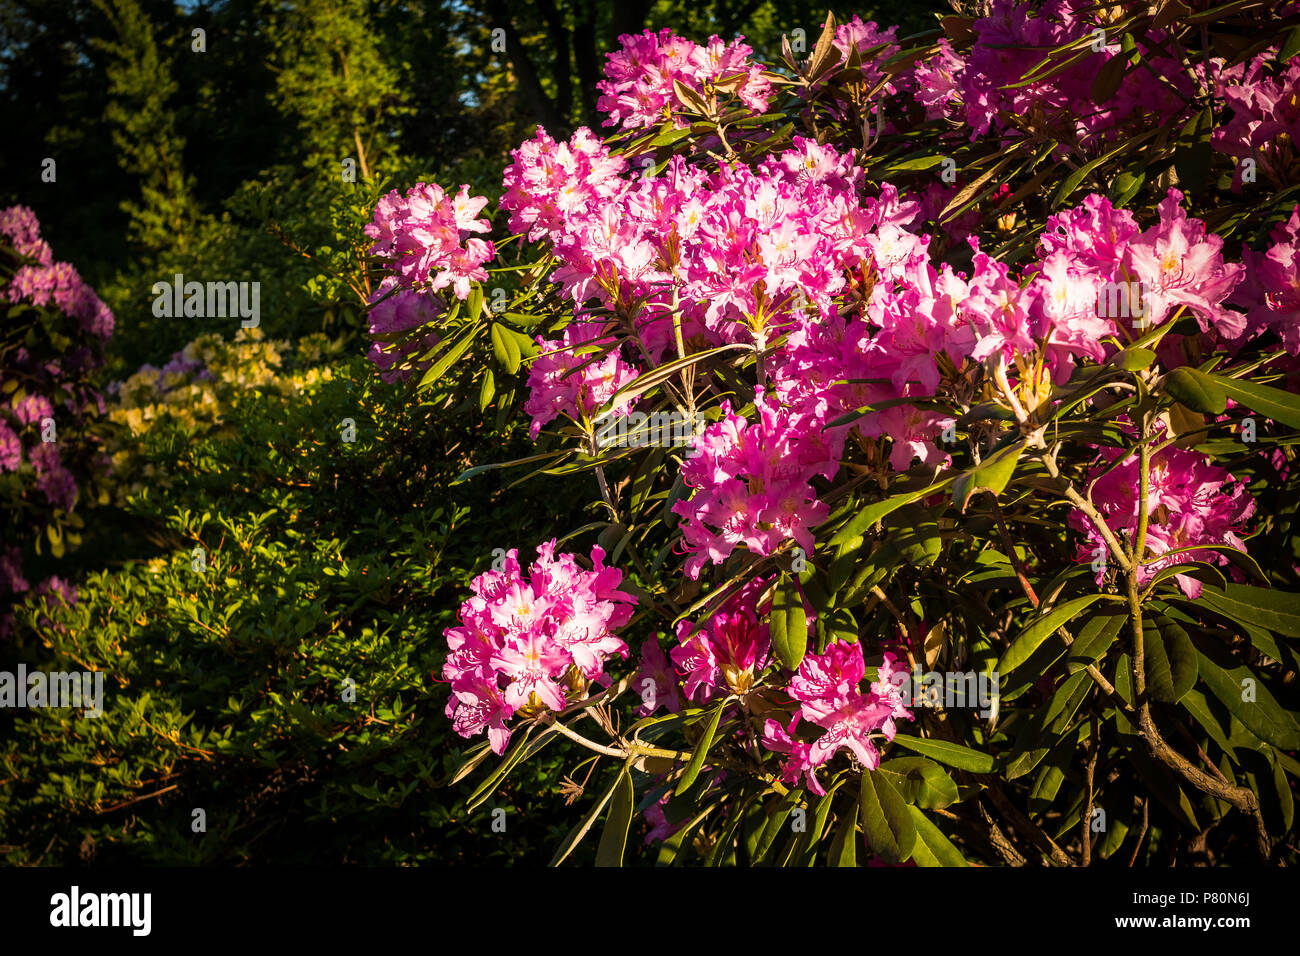 Rhododendrong Bush Of Pink Rhododendron In Garden With White